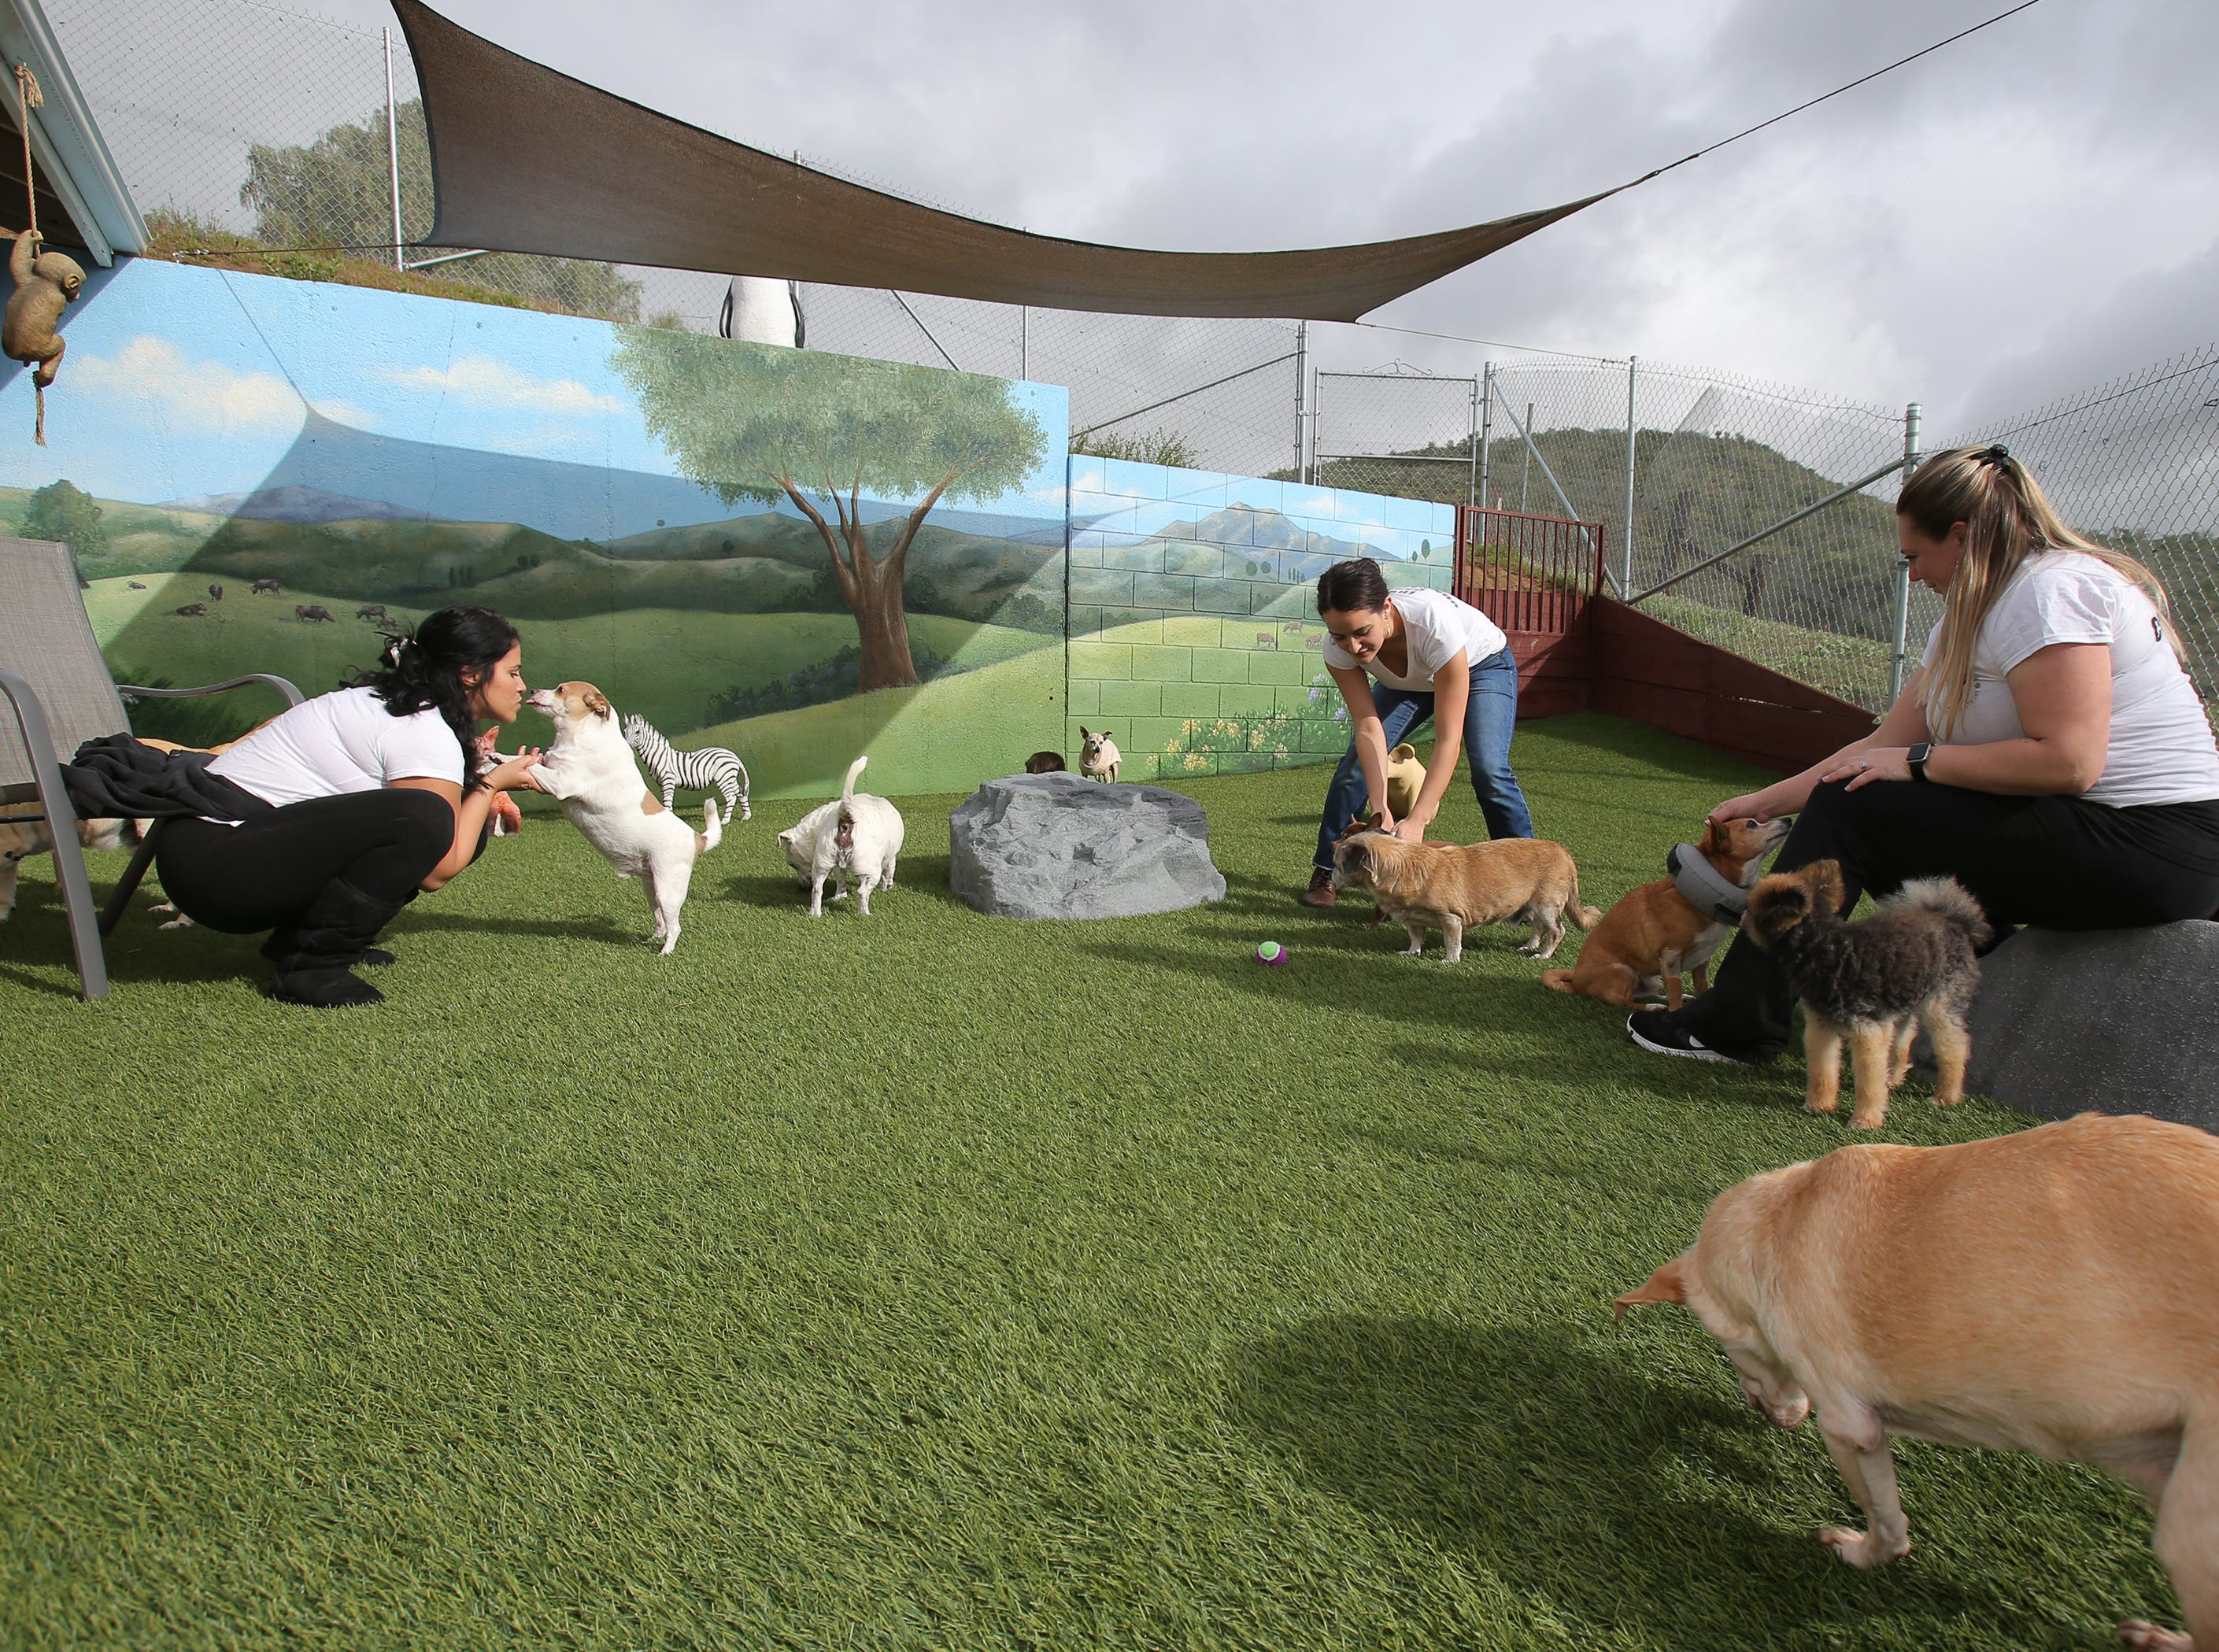 Patty Shumway, from left, Gabby Bonilla and Danielle Lady play with some of the dogs at  Wise Tails, a senior dog sanctuary in Simi Valley.